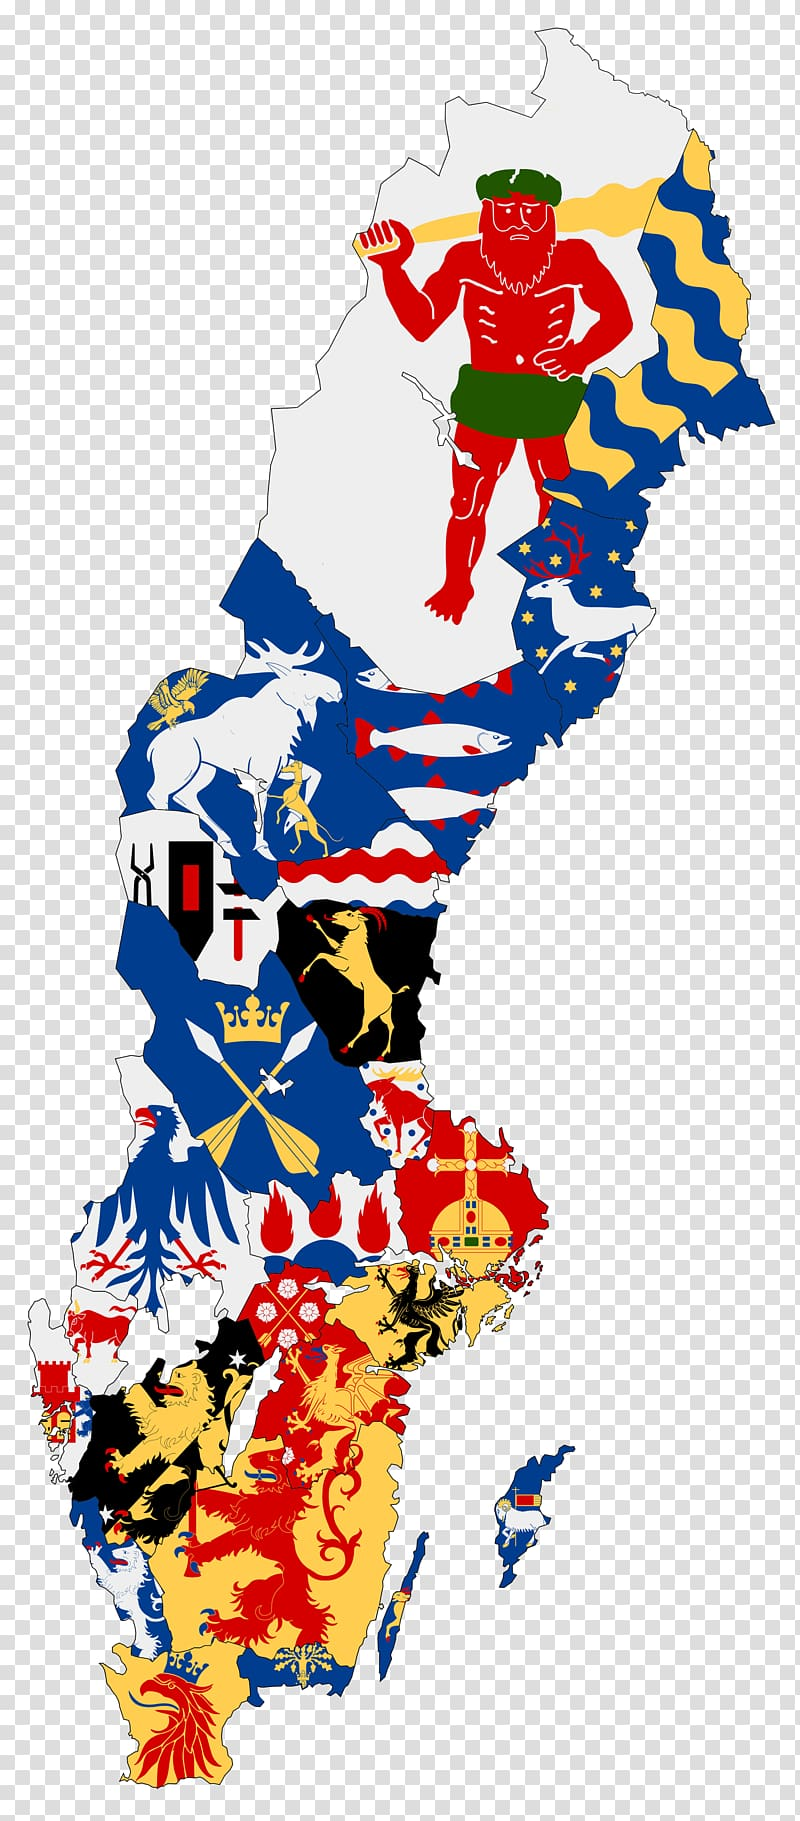 Swedish clipart clip art free library Flag of Sweden Flag of Sweden Map Swedish, Flag transparent ... clip art free library